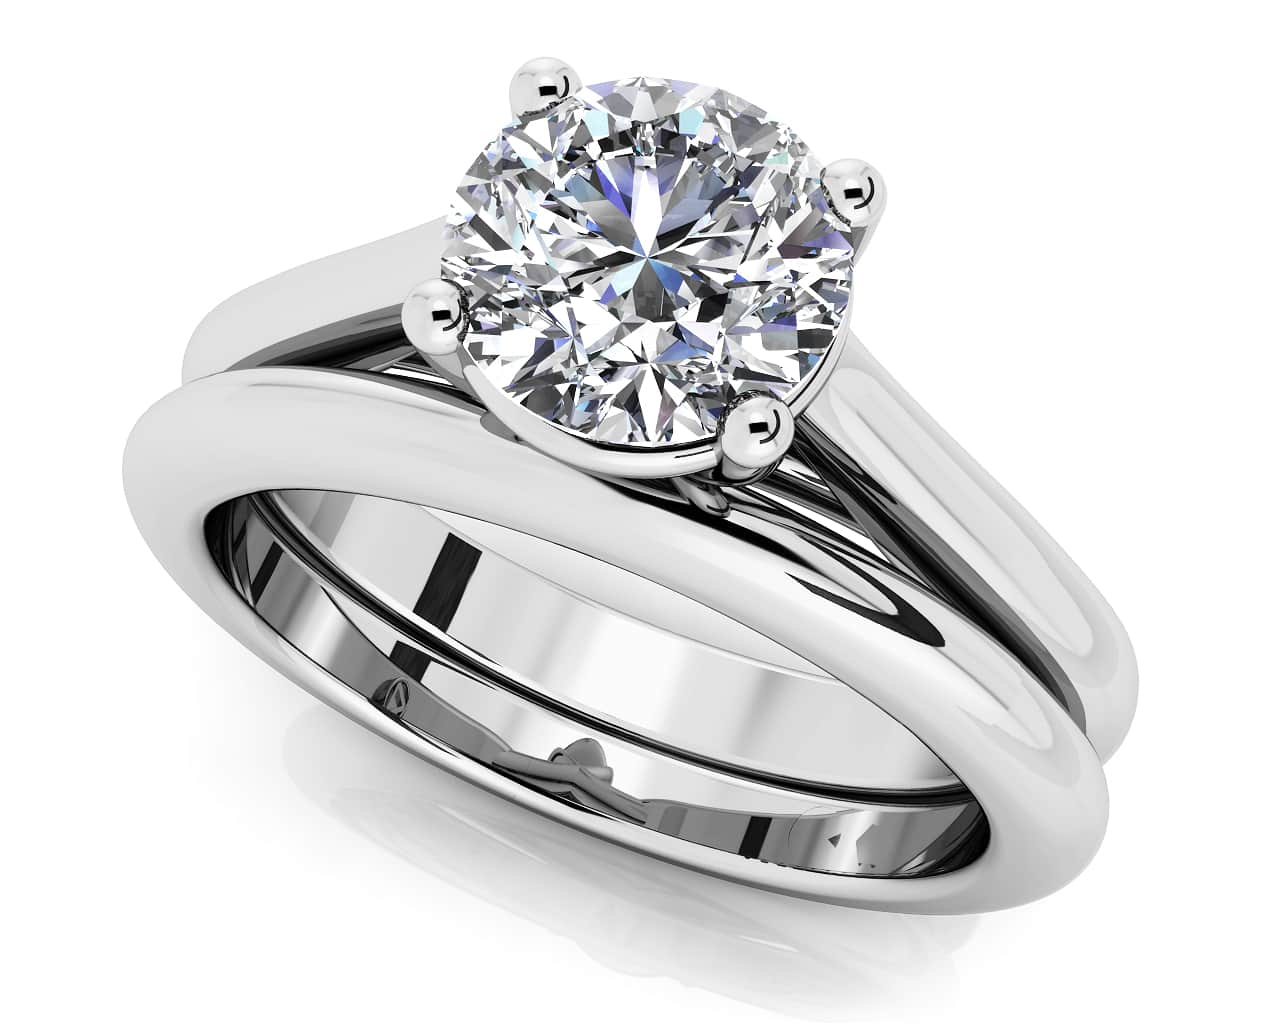 customize your wedding set matching diamond bridal set - Engagement Ring And Wedding Ring